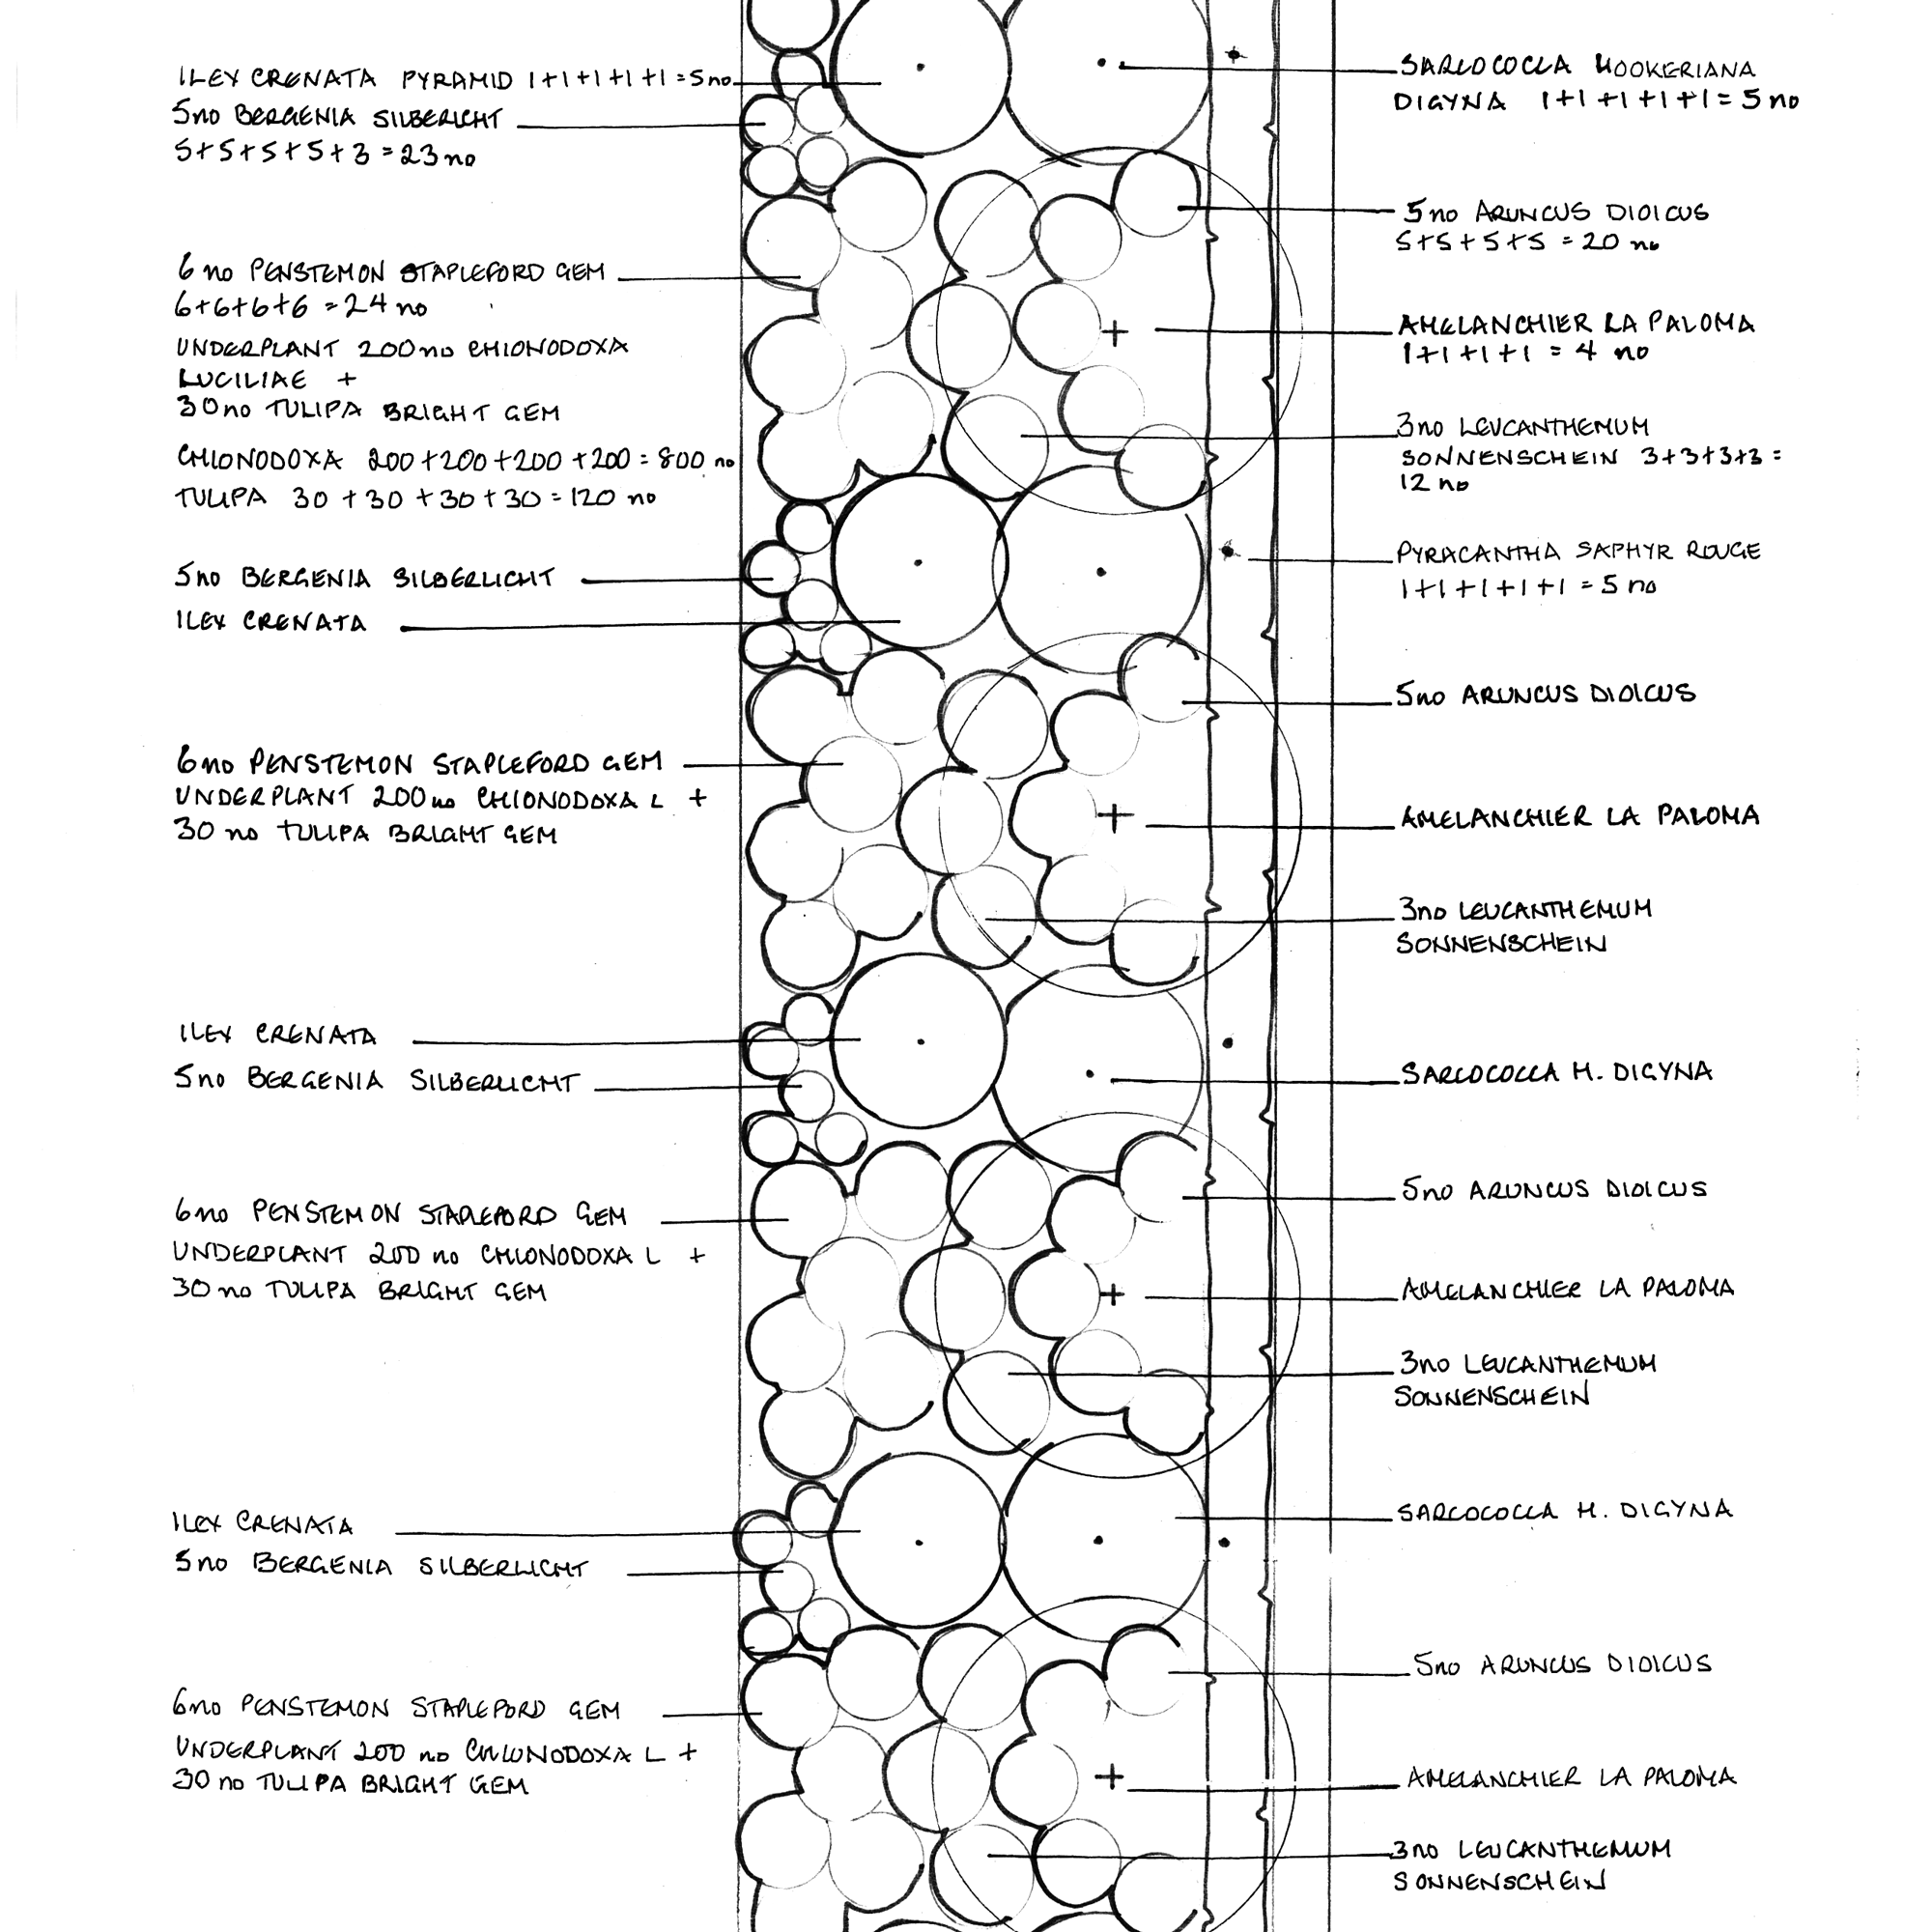 Example planting plan produced for postal and email garden design service